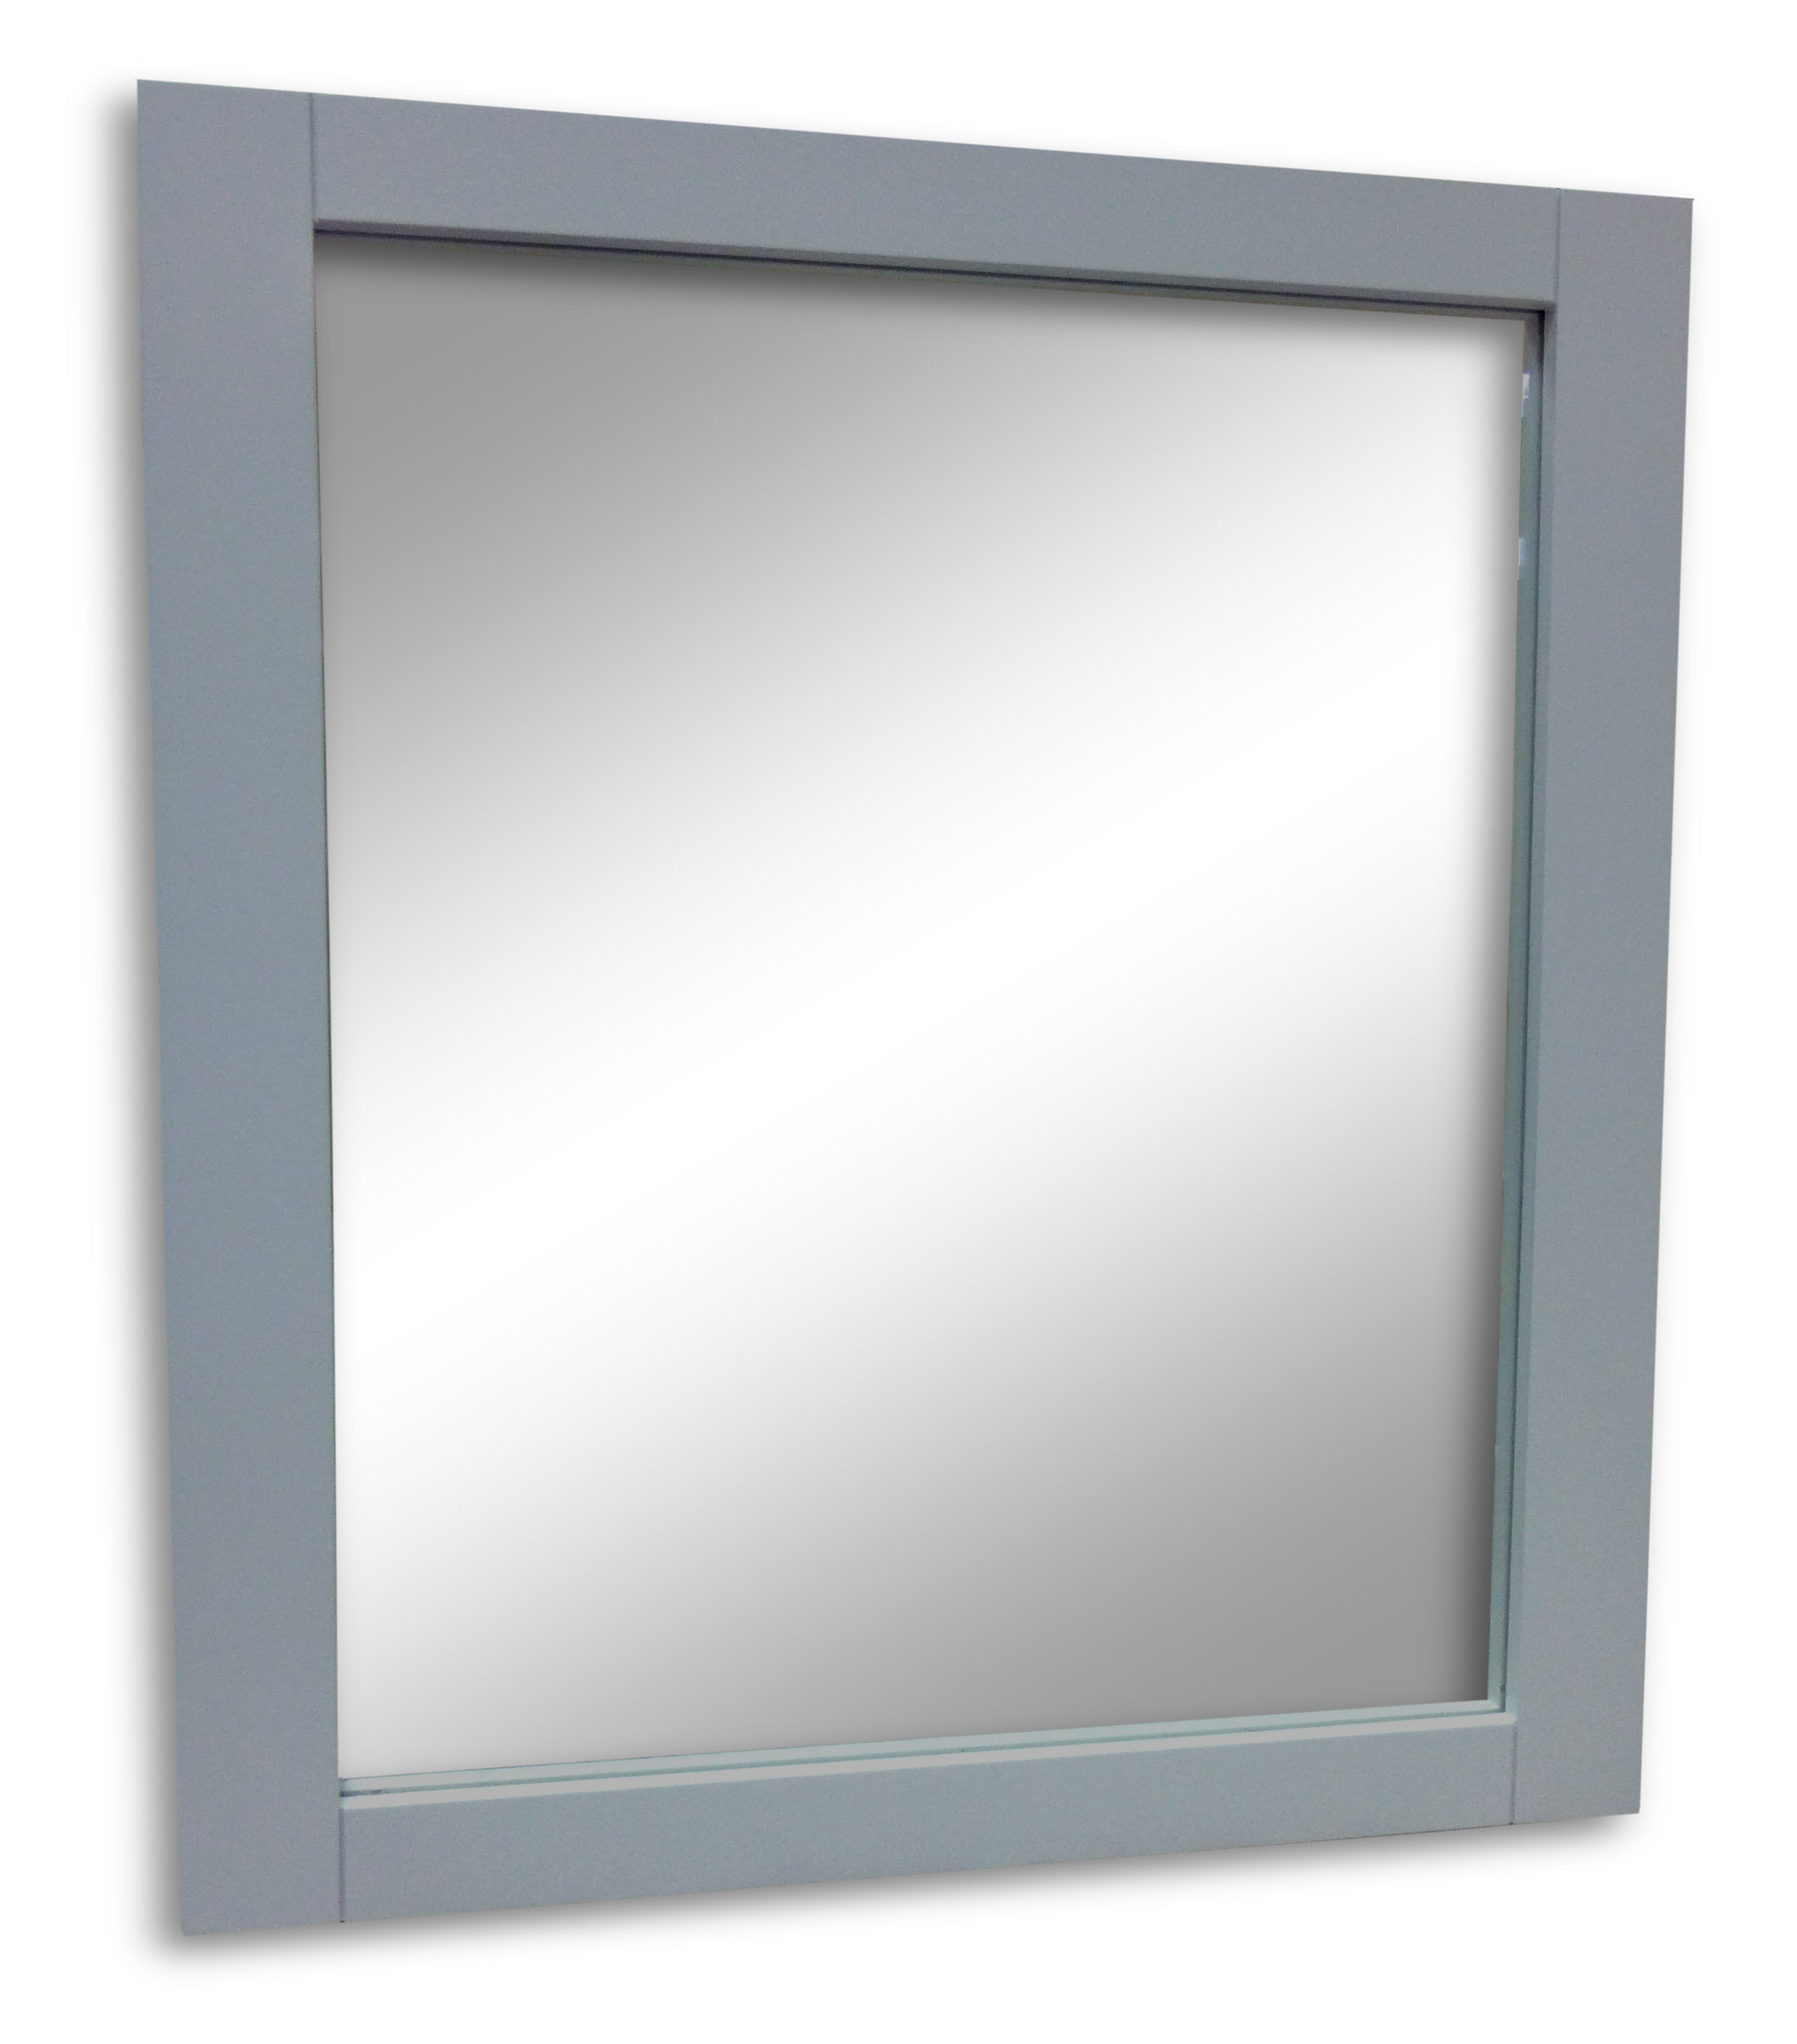 Grey framed mirror